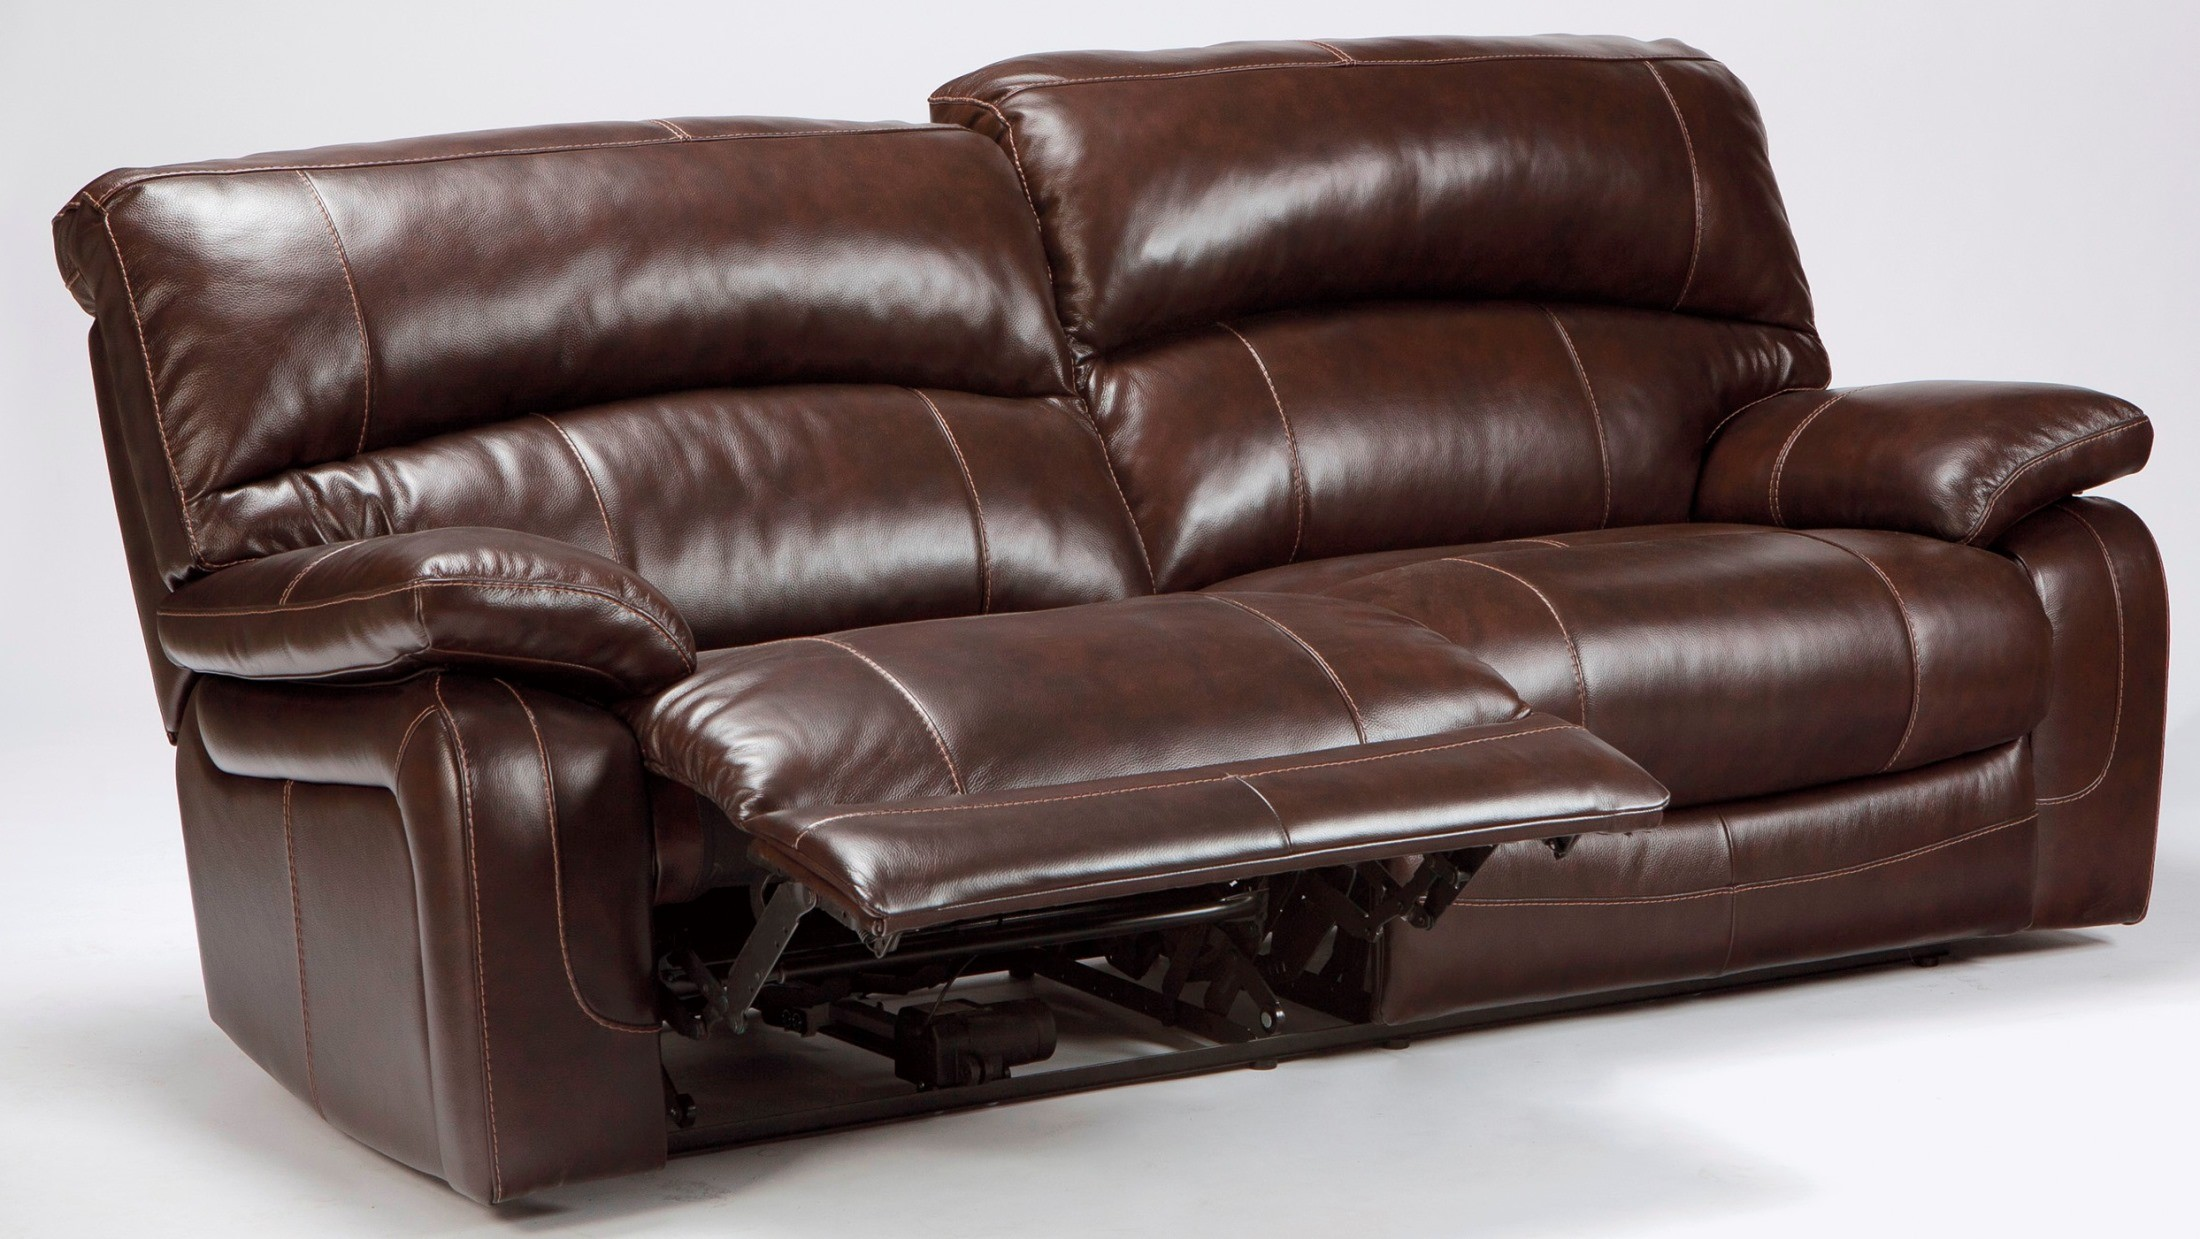 Damacio Dark Brown 2 Seat Power Reclining Sofa From Ashley U9820047 Coleman Furniture